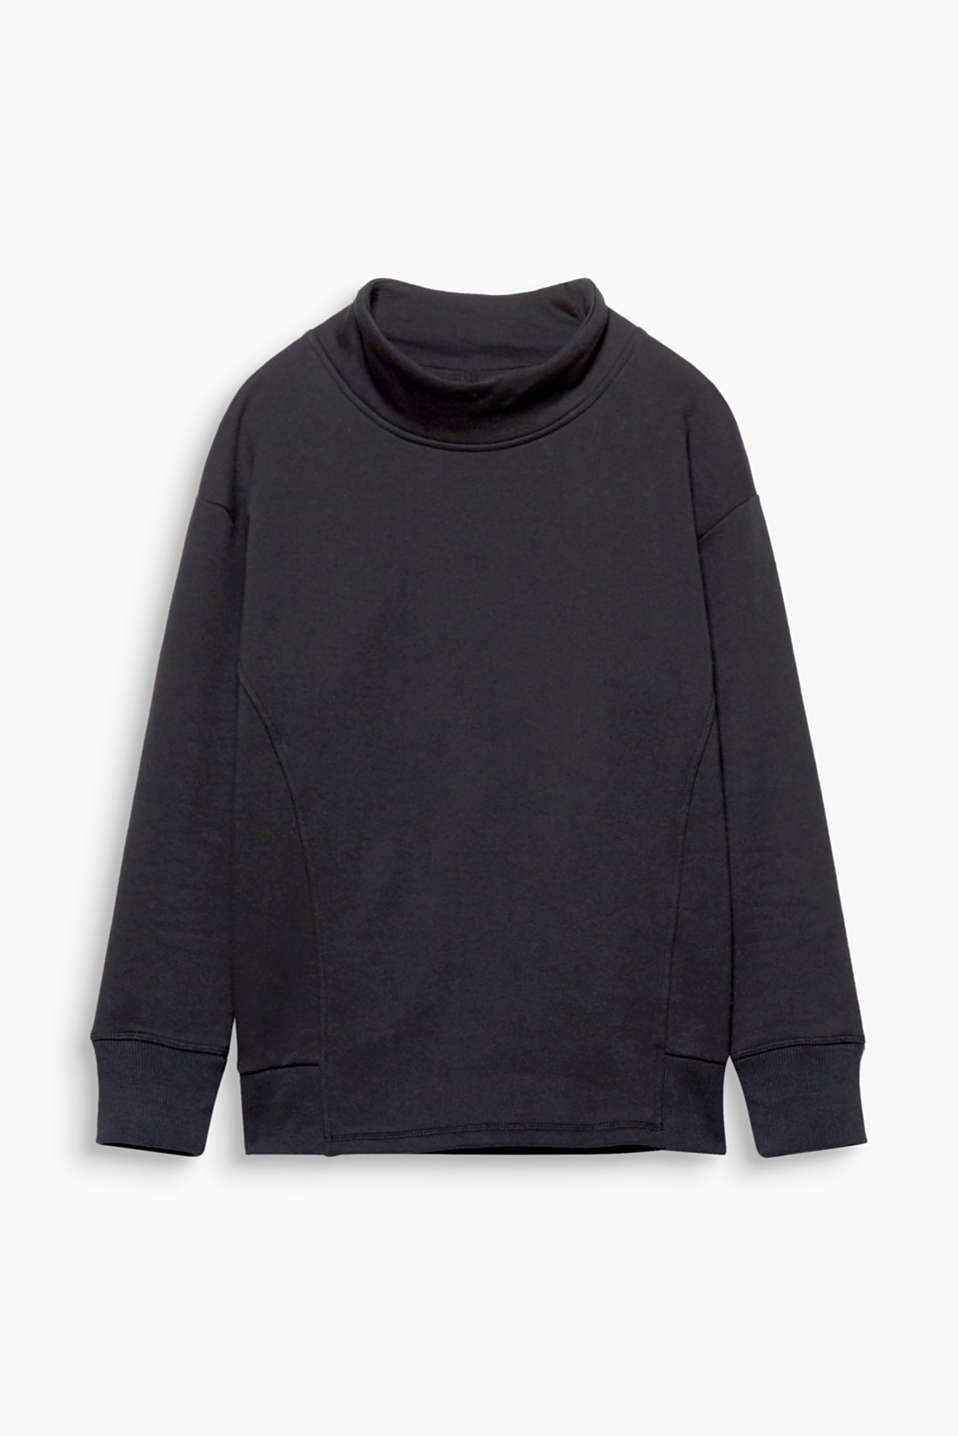 For inside or outside: This sweatshirt with a wide turtleneck and a napped interior is a favourite!